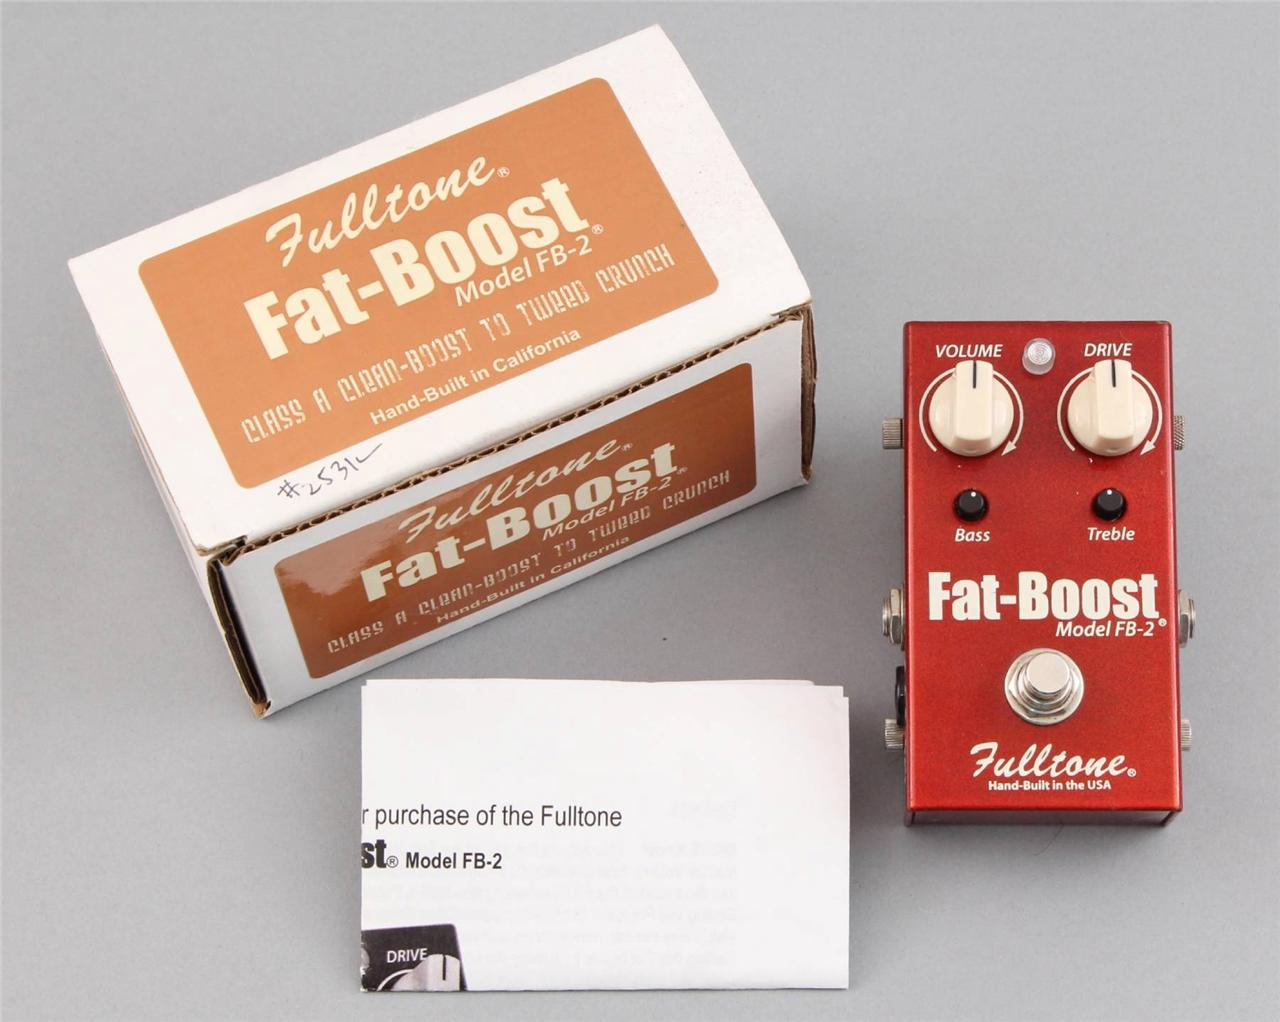 Fulltone Fat Boost Fb 2 Guitar Effects Pedal With Box Pd 7598